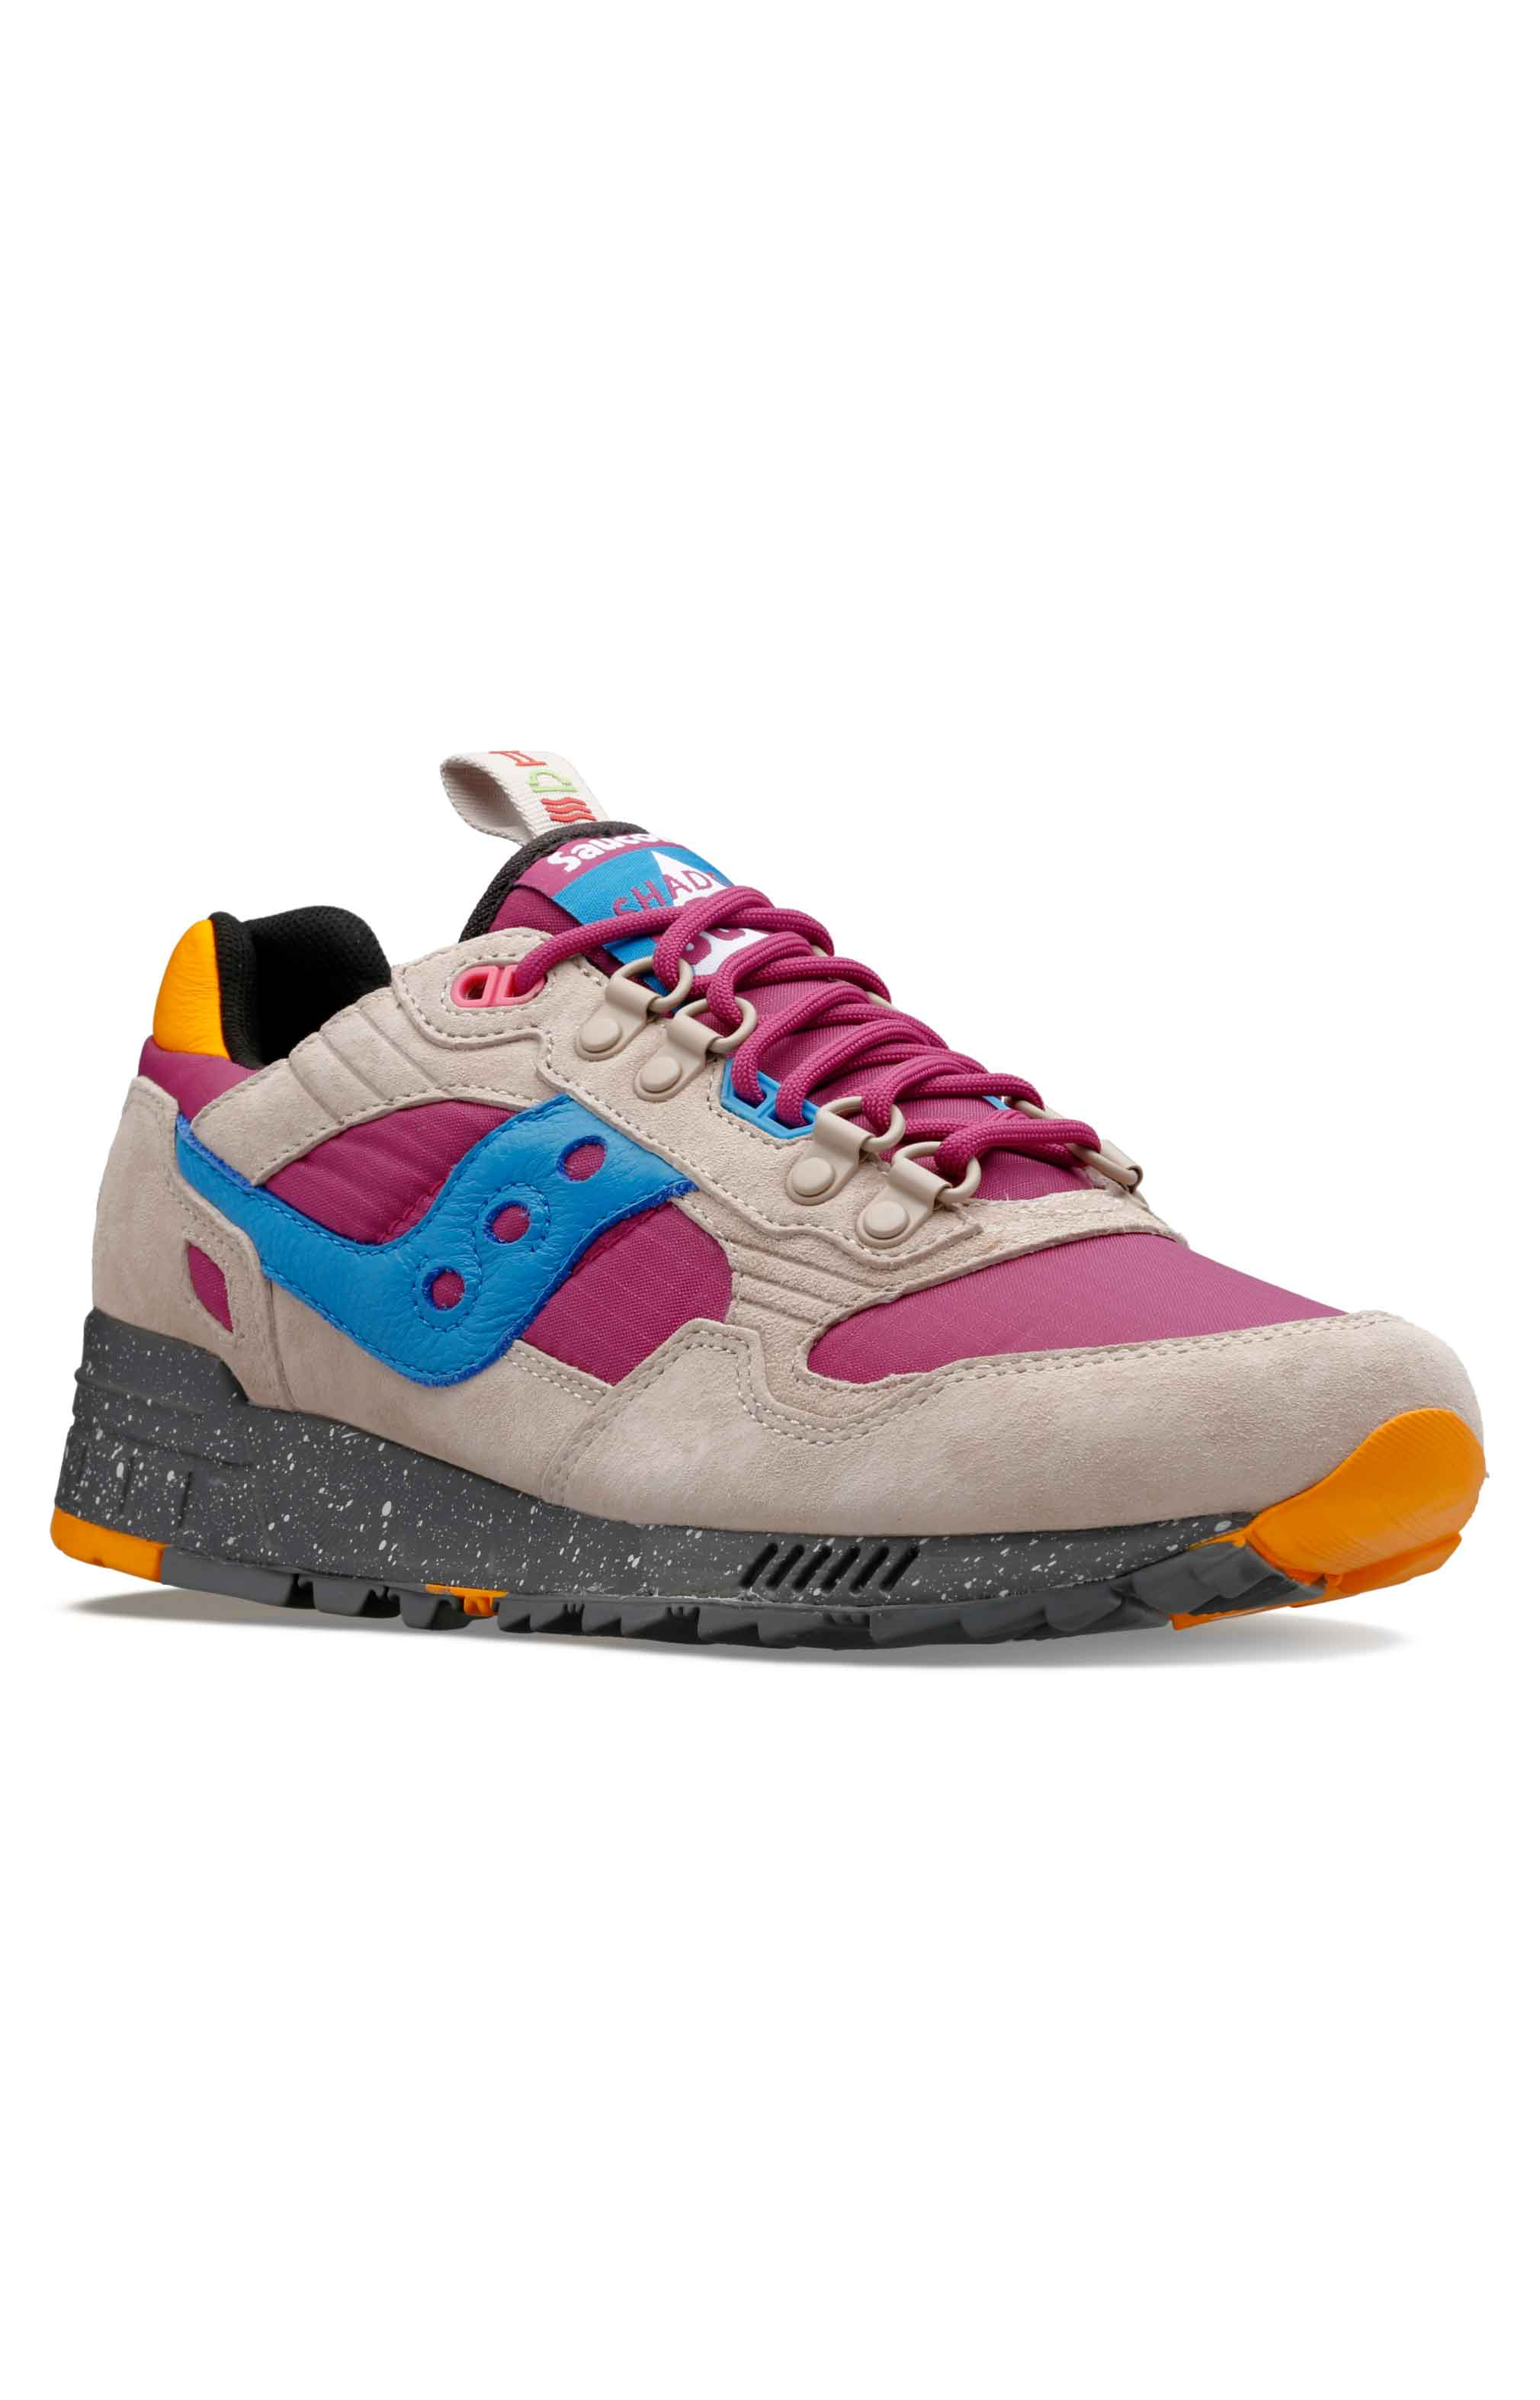 (S70559-2) Shadow 5000 Shoes - Astro/Air 5